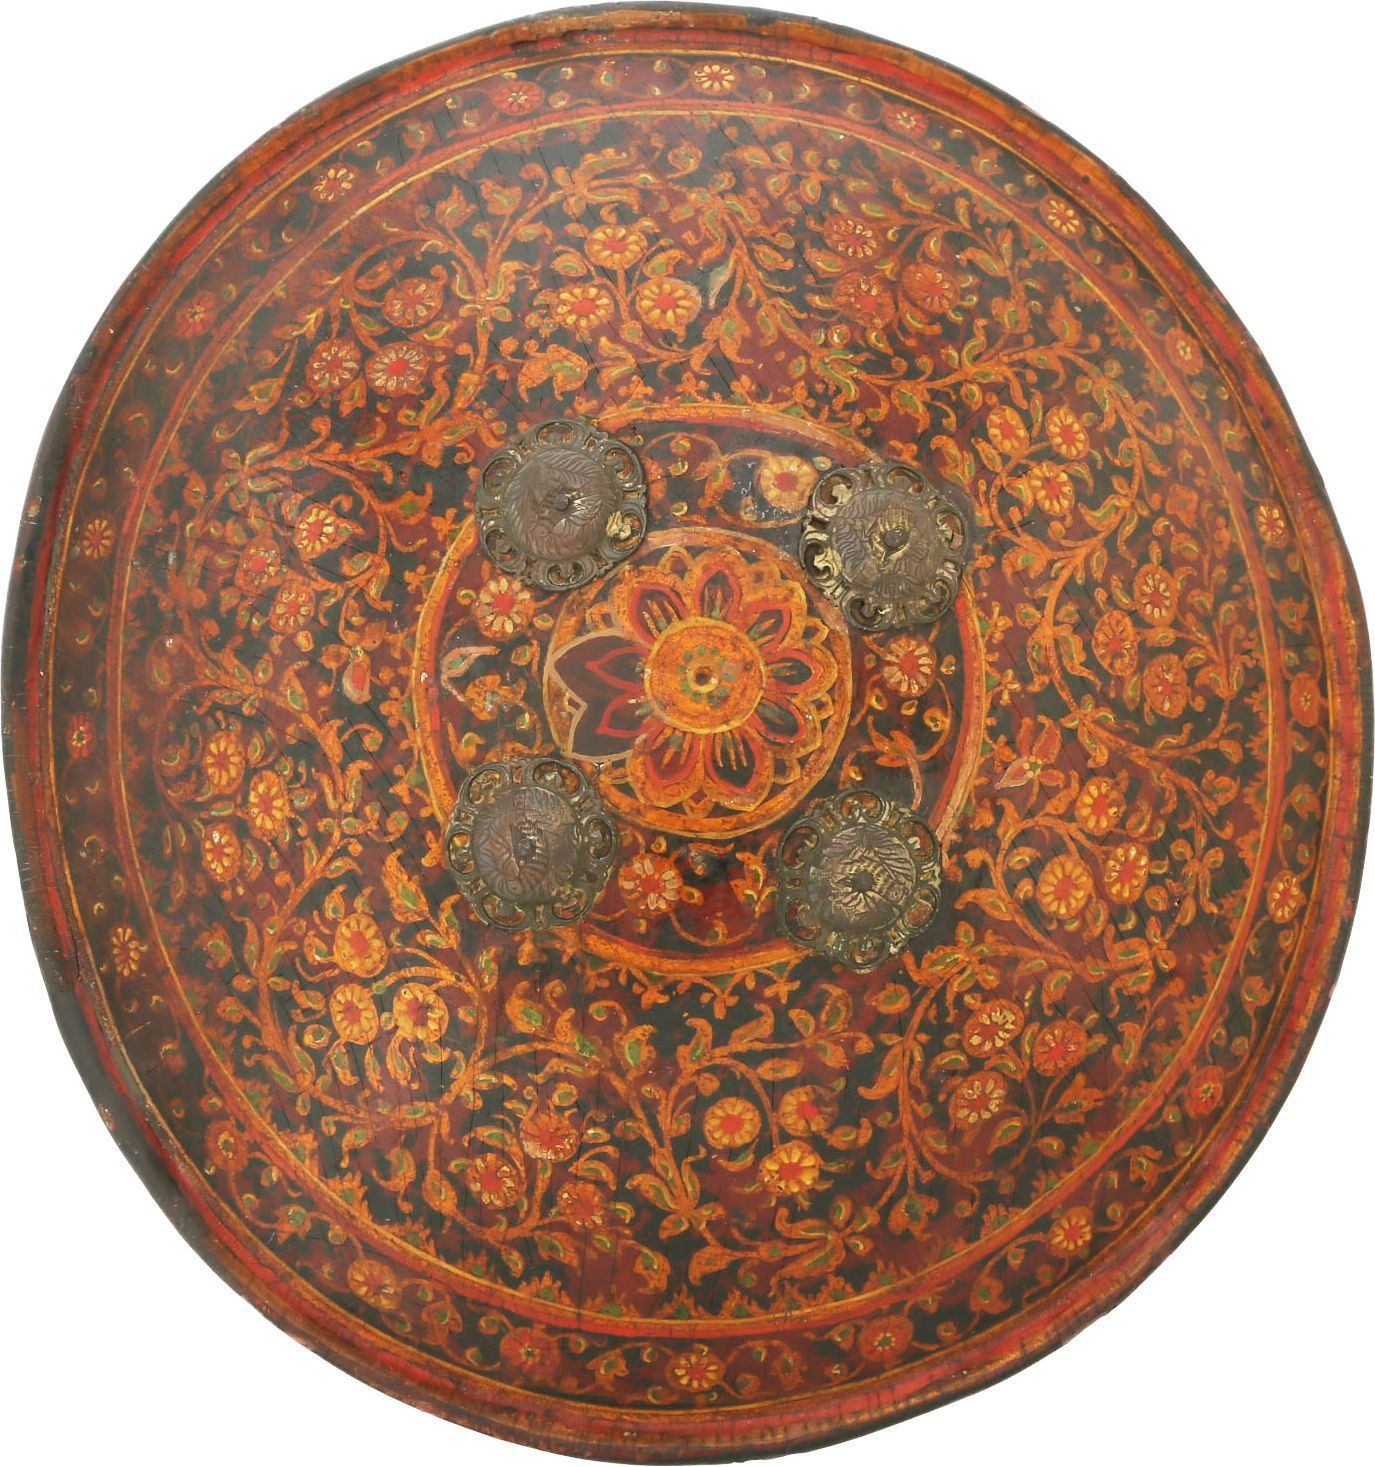 FINE INDOPERSIAN PAINTED HIDE SHIELD BUCKLER - Fagan Arms